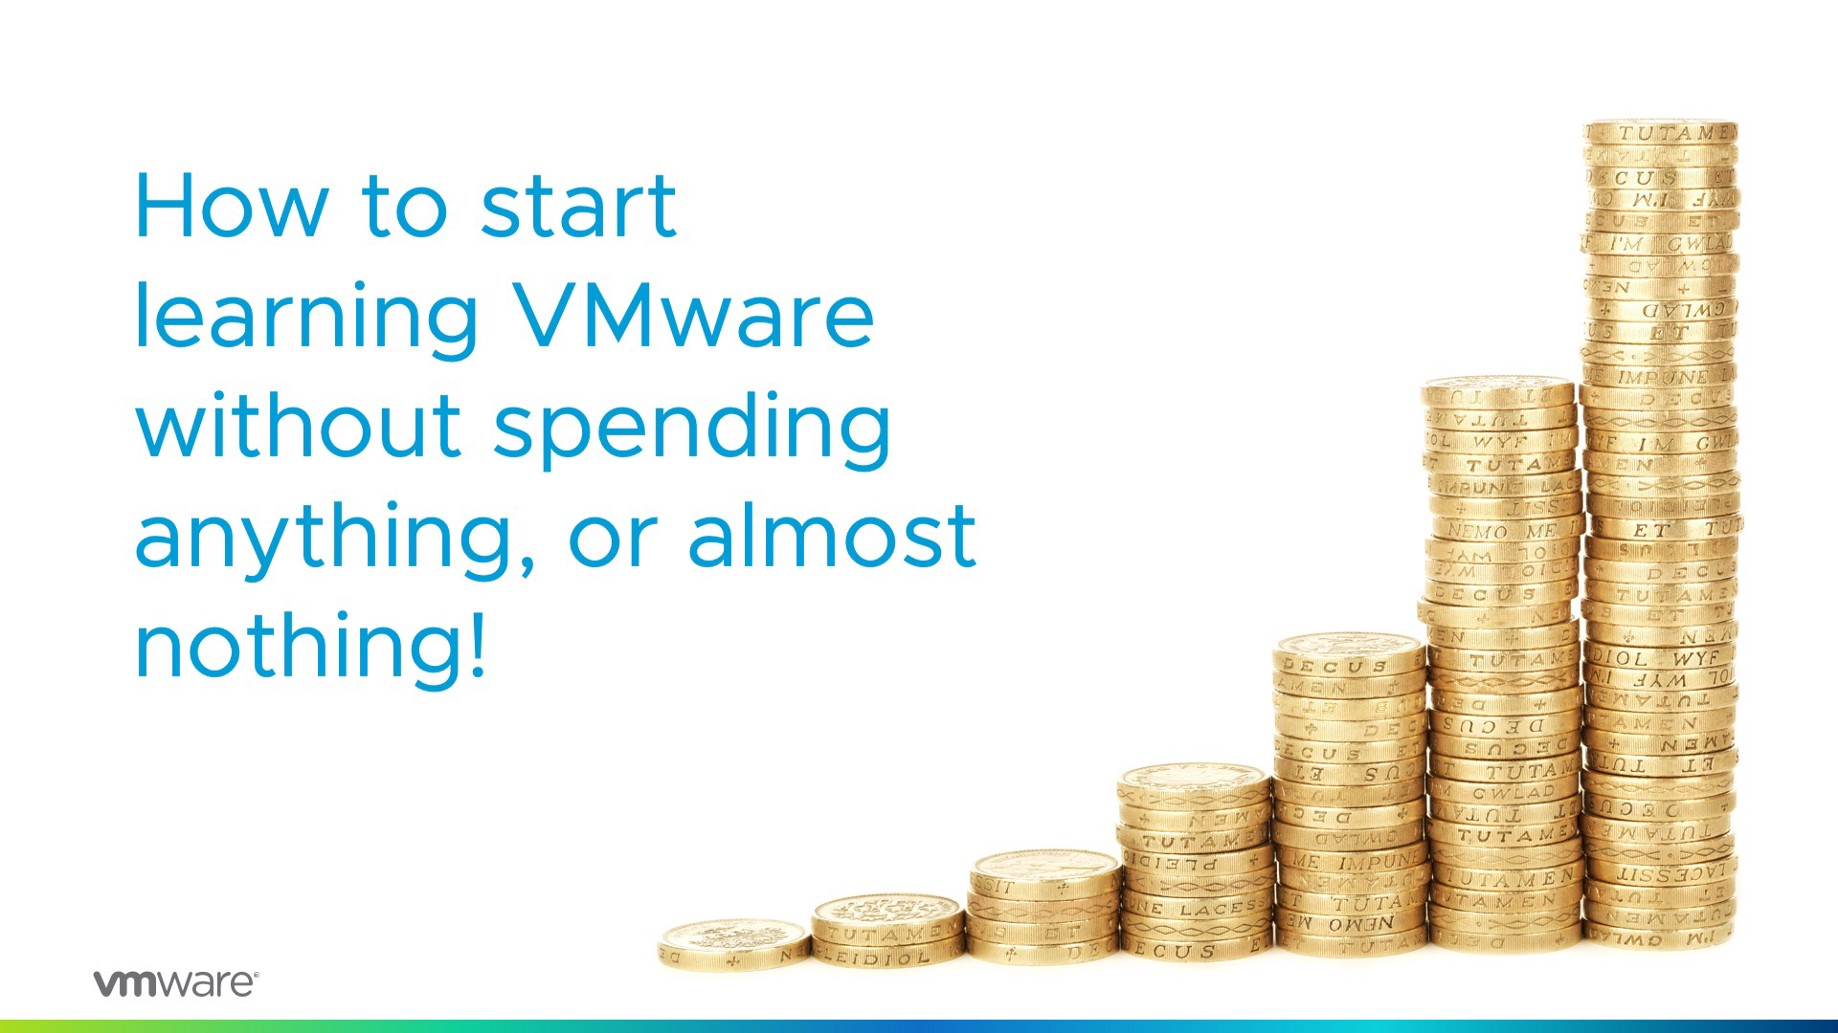 How to start learning VMware without spending anything, or